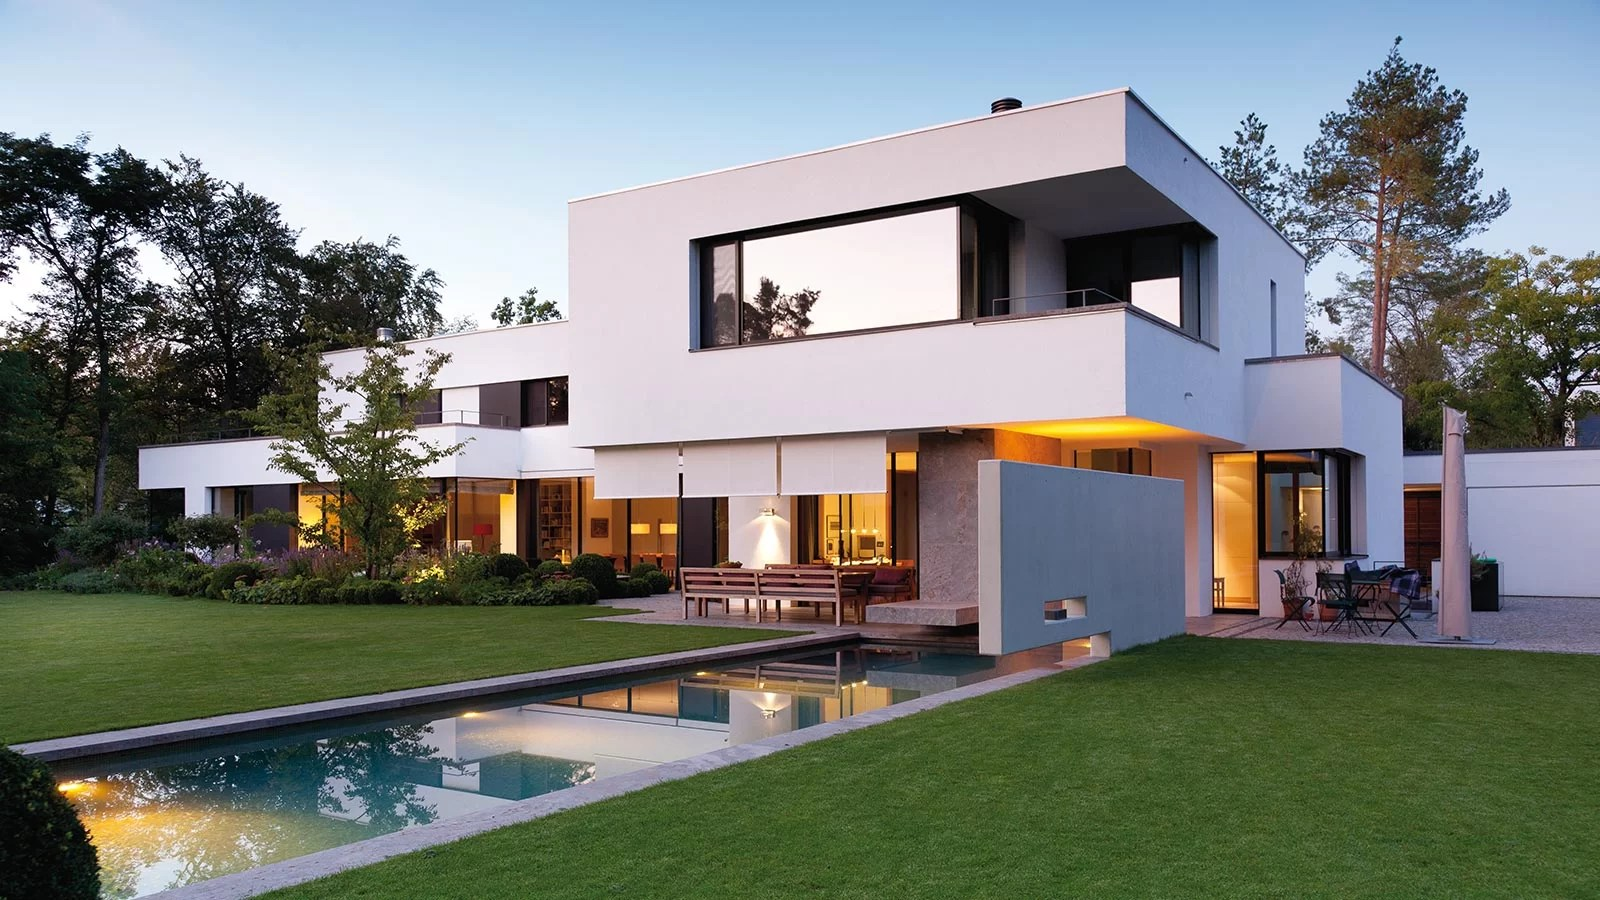 Bauhaus Villa House I Beautiful Bauhaus Villa In Munich Germany 10 Stunning